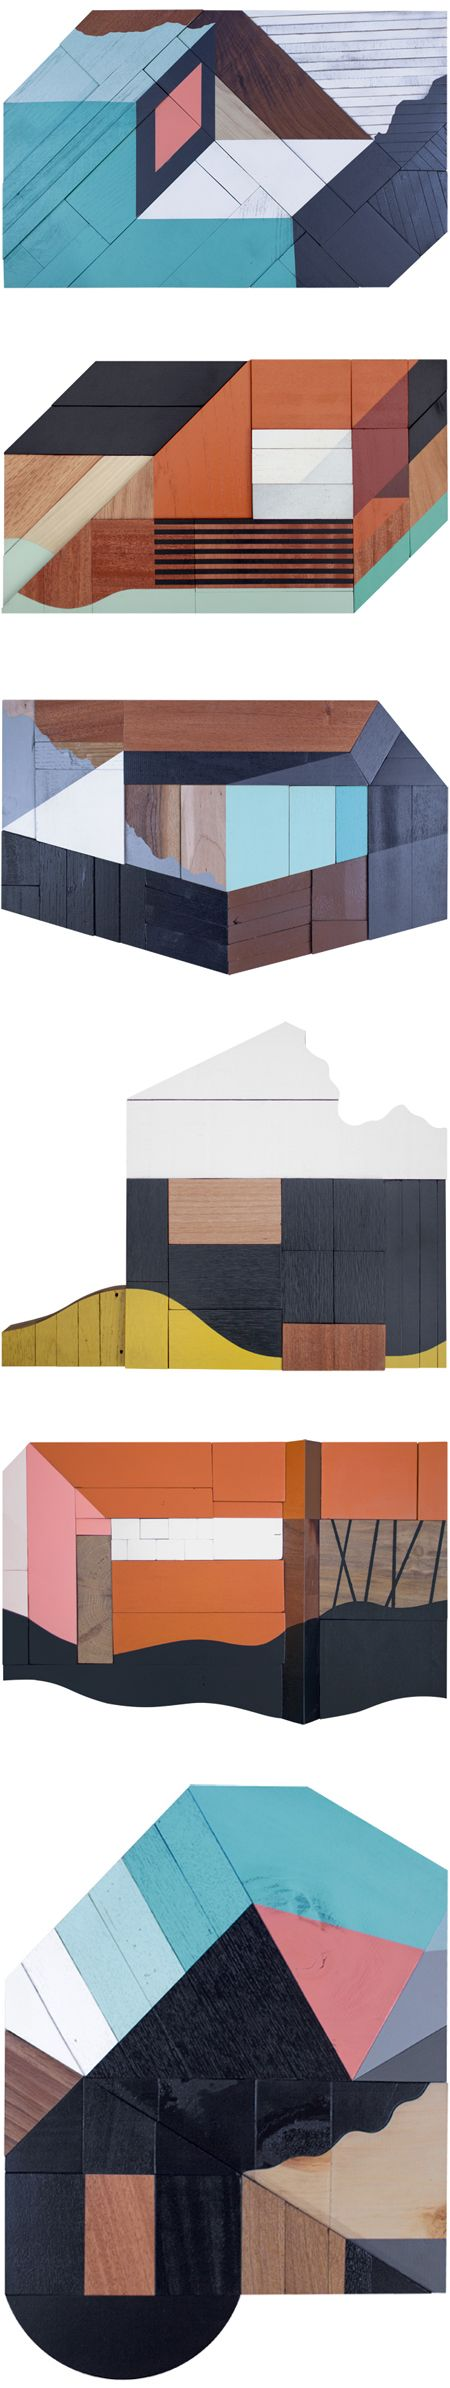 Oh my. Atlanta based artist Drew Tyndell has me wanting to move into a little, flat, wooden, multi-colored house. Pink & navy, straight angles & organic shapes, painted surface & exposed woodgrain… and of course, just the right amount of insane precision. Home sweet home.